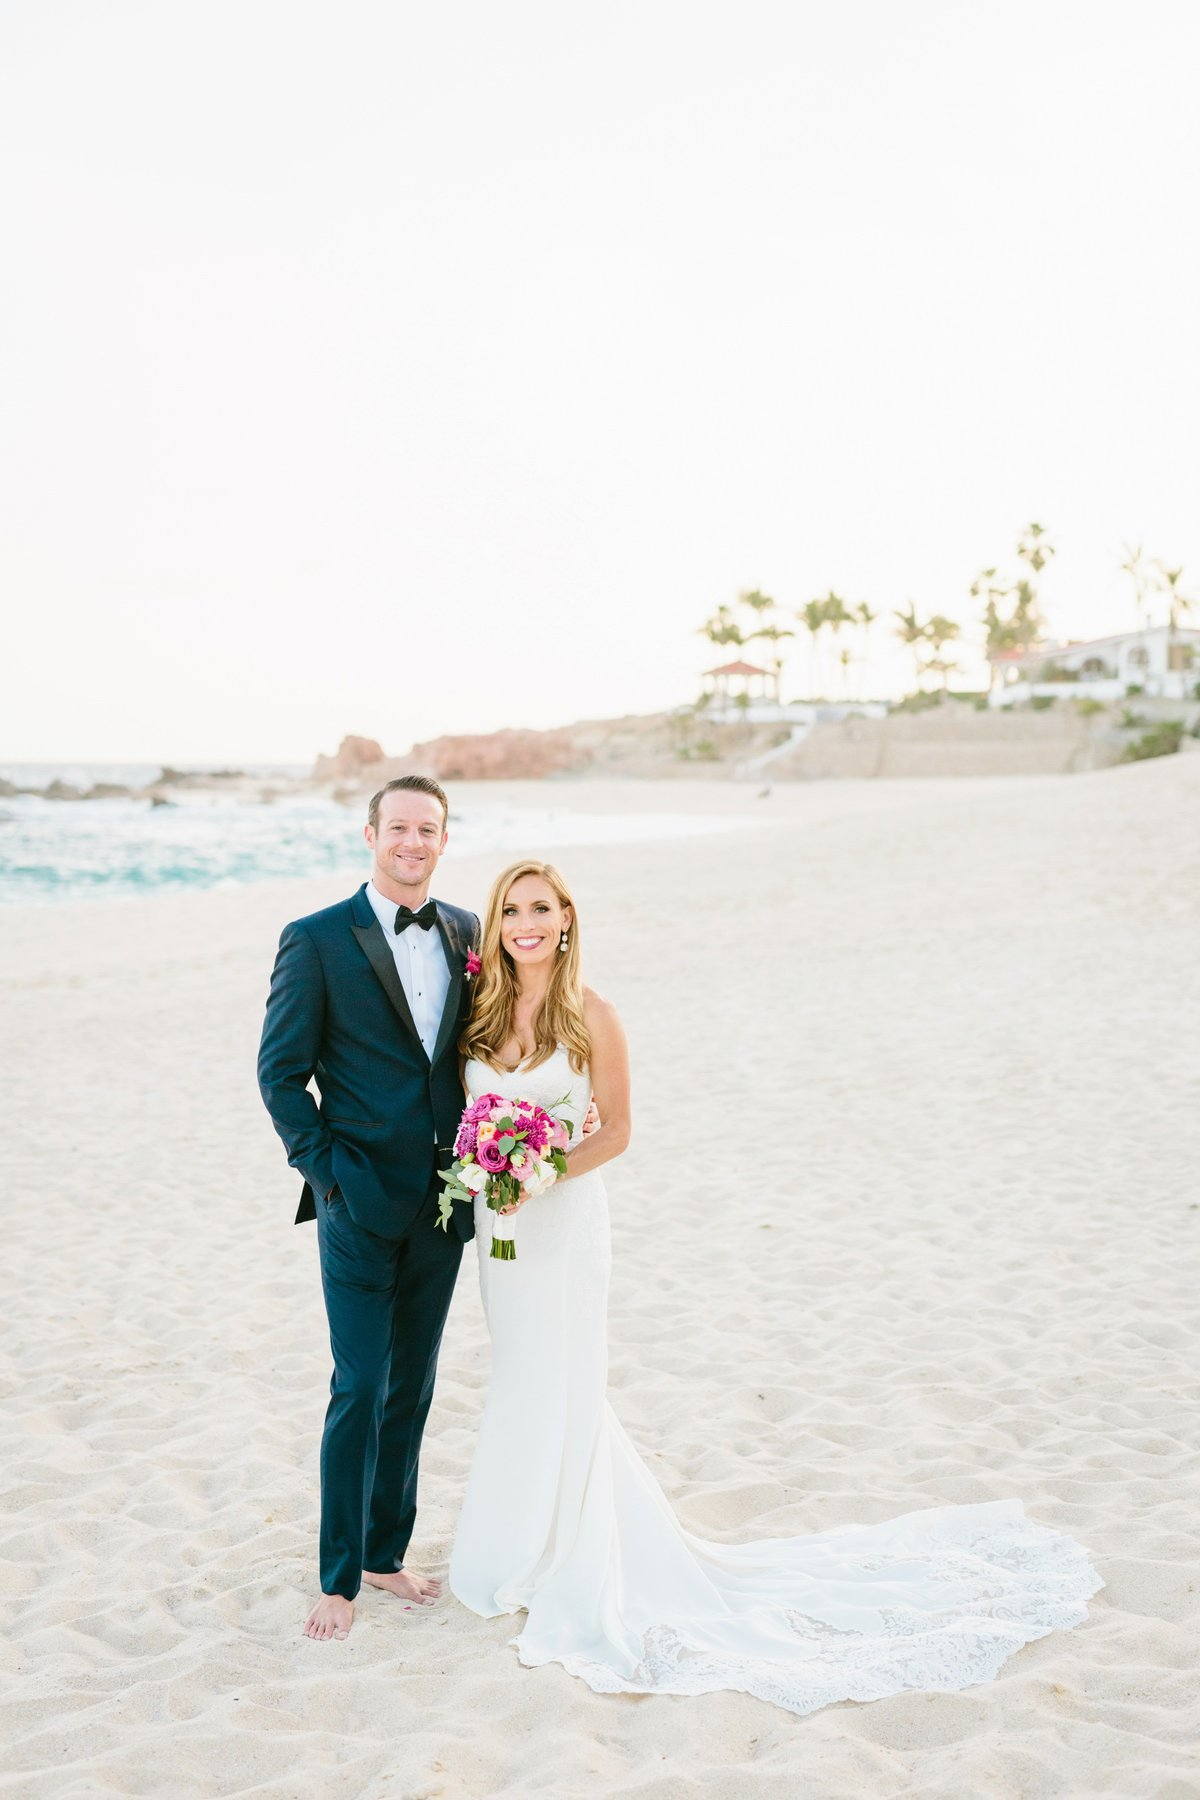 Best California Wedding Photographer-Jodee Debes Photography-308